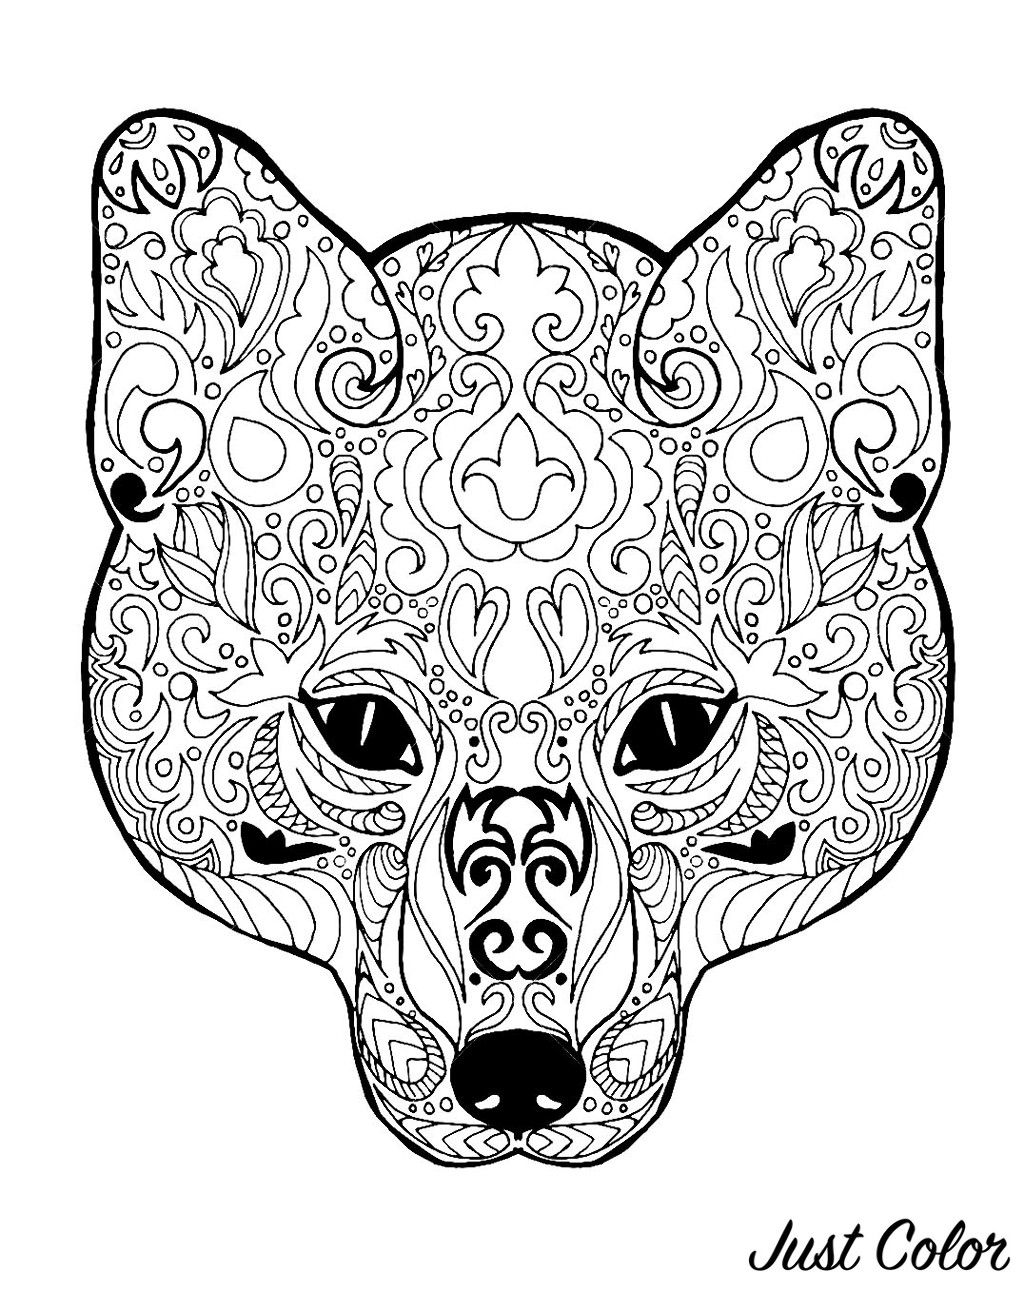 Fox head with simple patterns